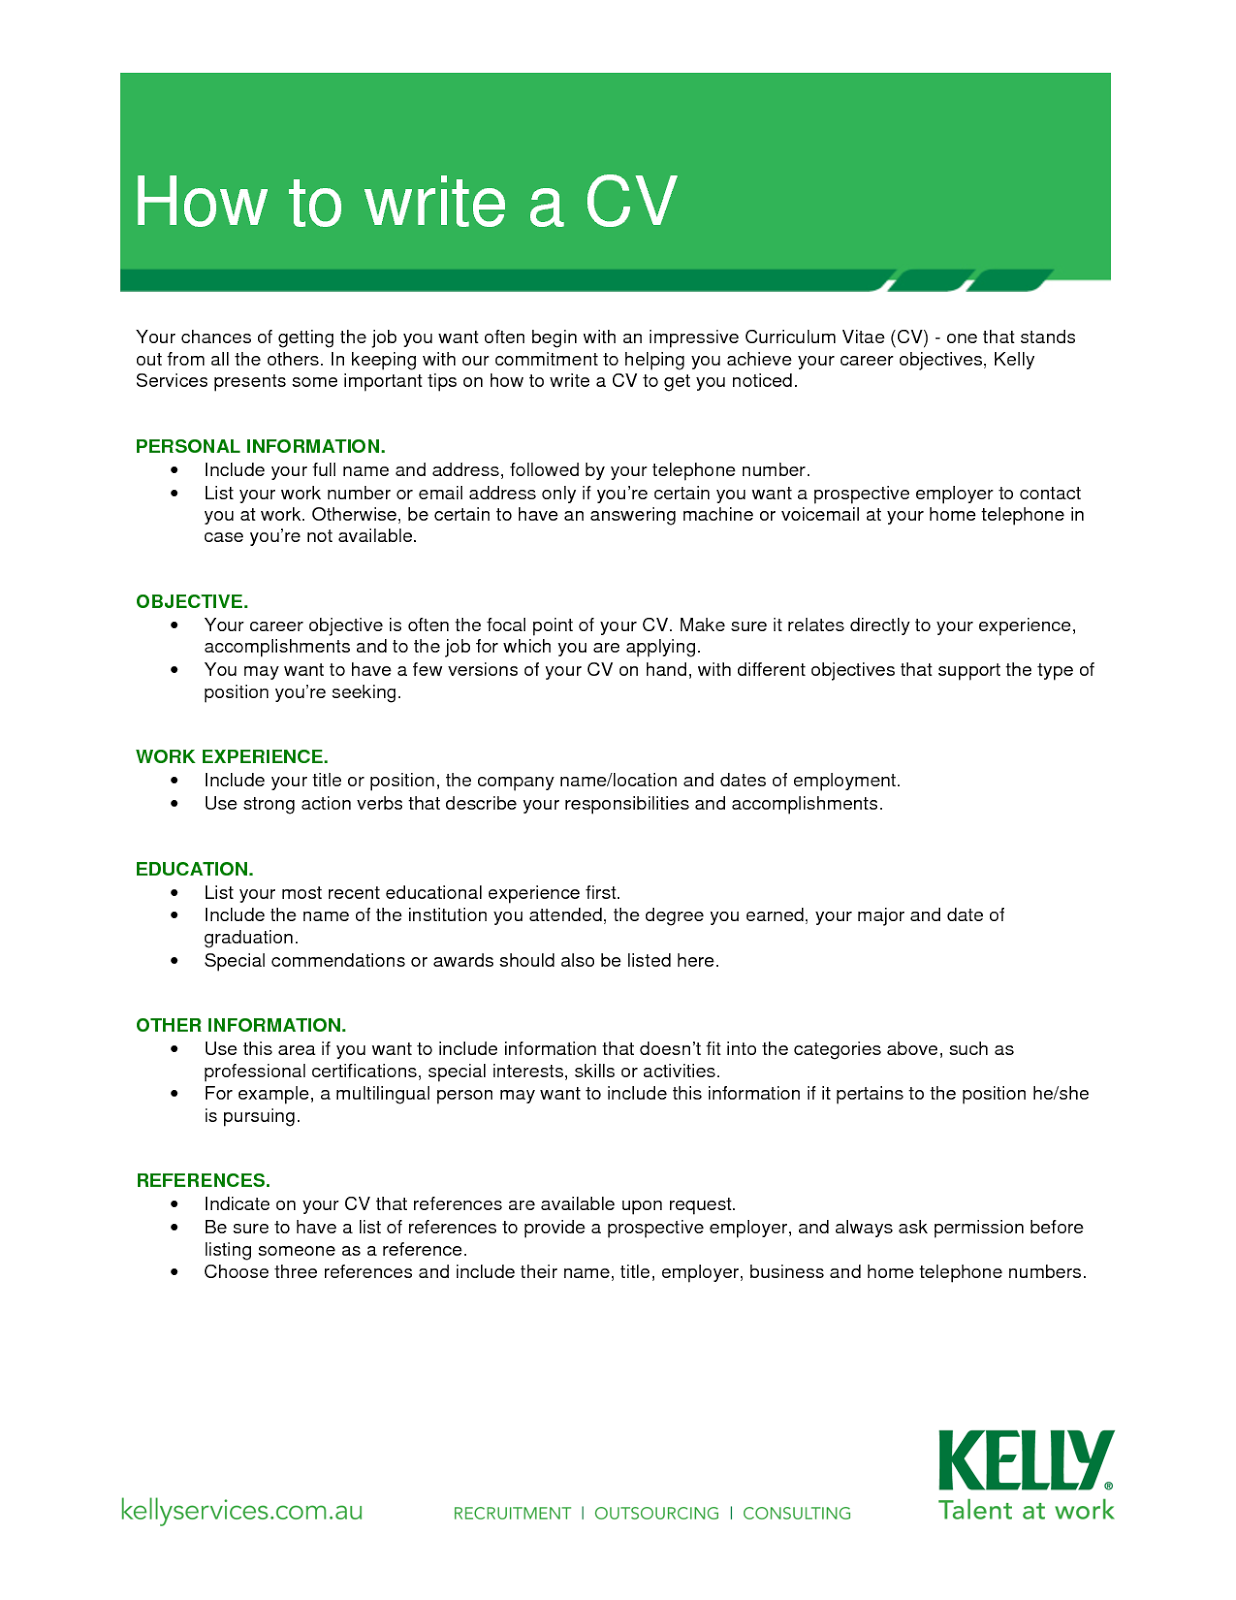 How to write a cv form